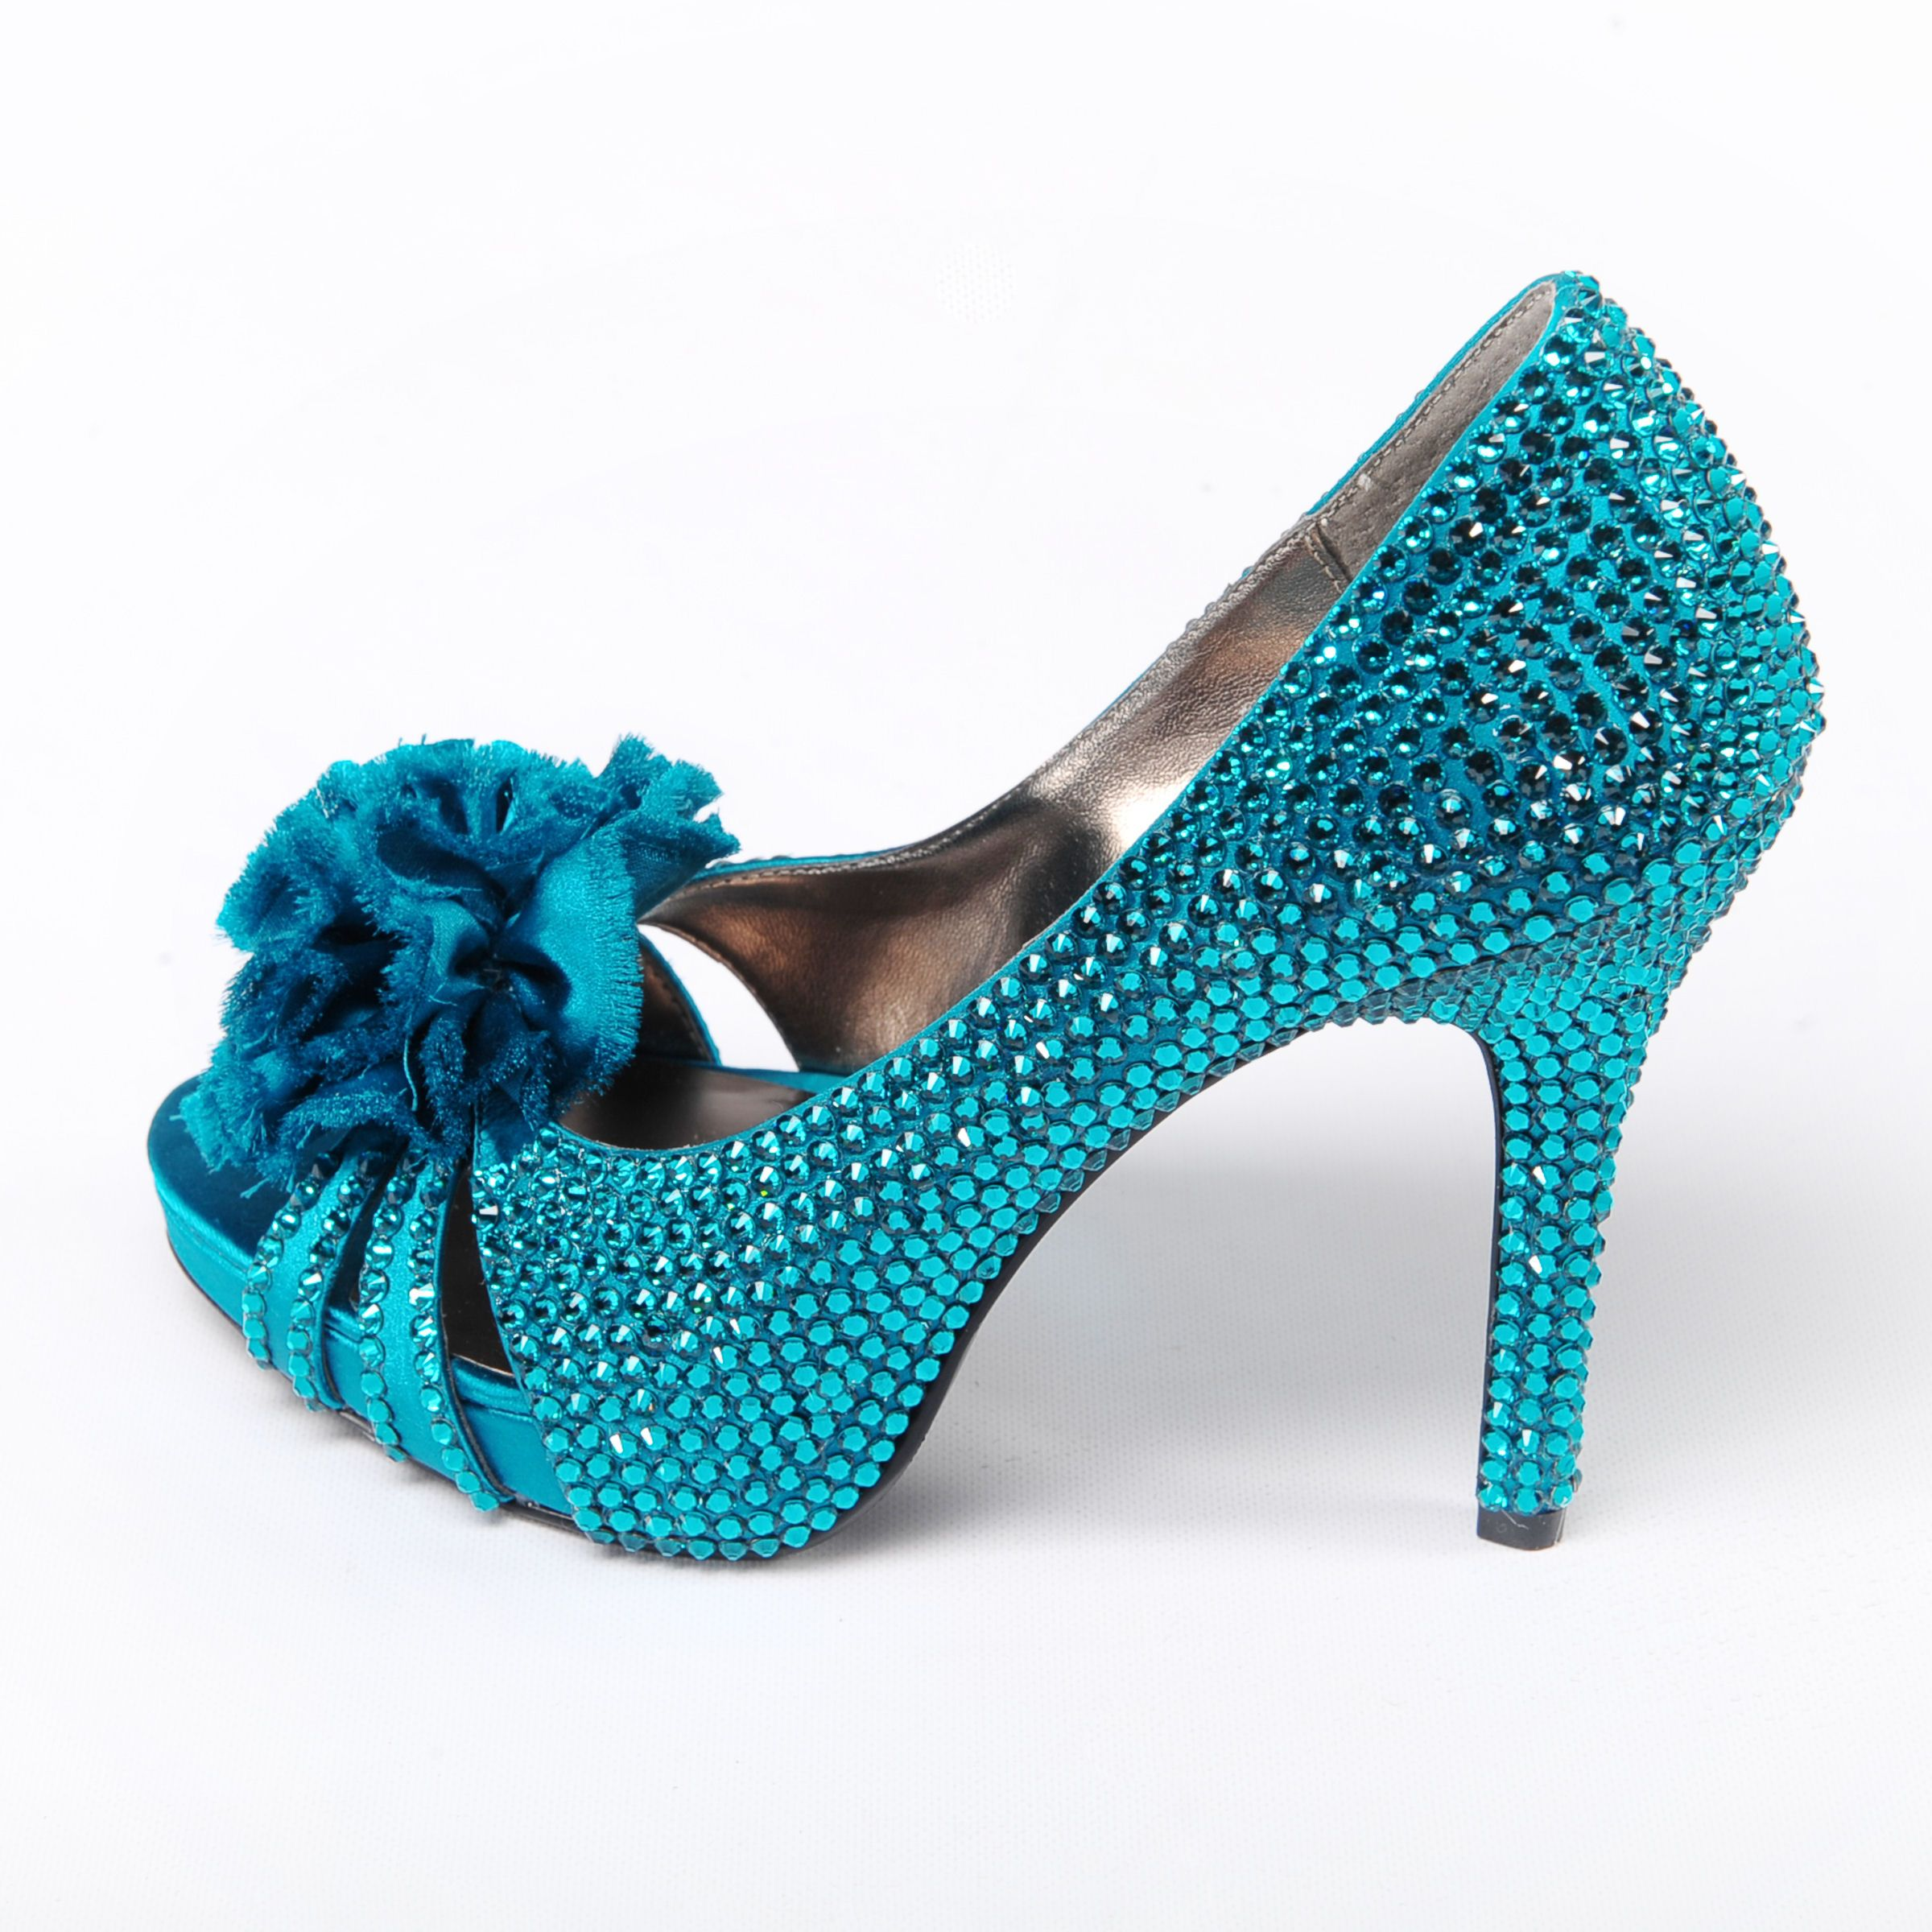 sparkly turquoise heels | Shoes | Pinterest | Turquoise heels ...